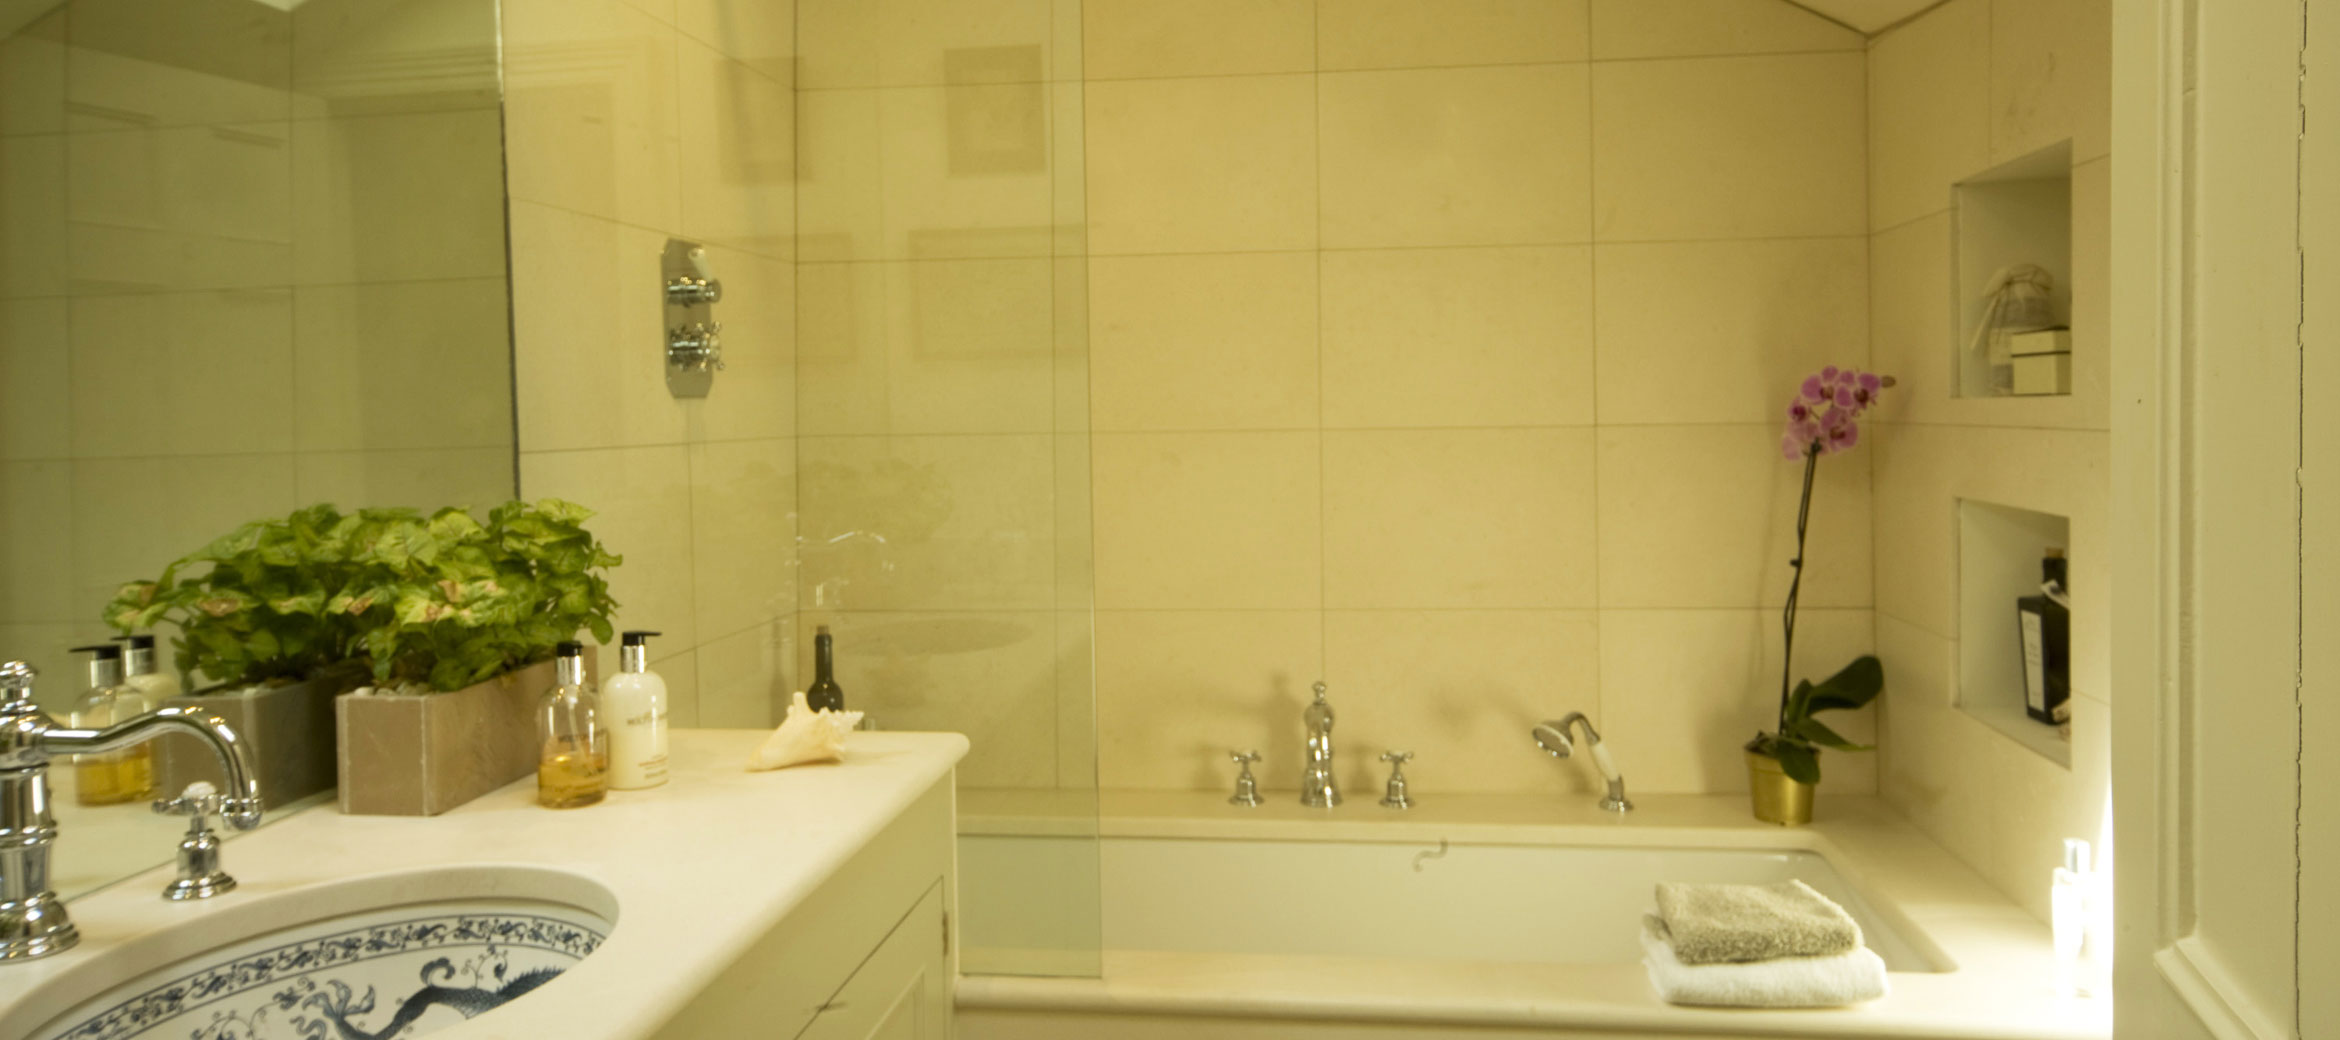 Singer-House-chipping-campden-bathroom